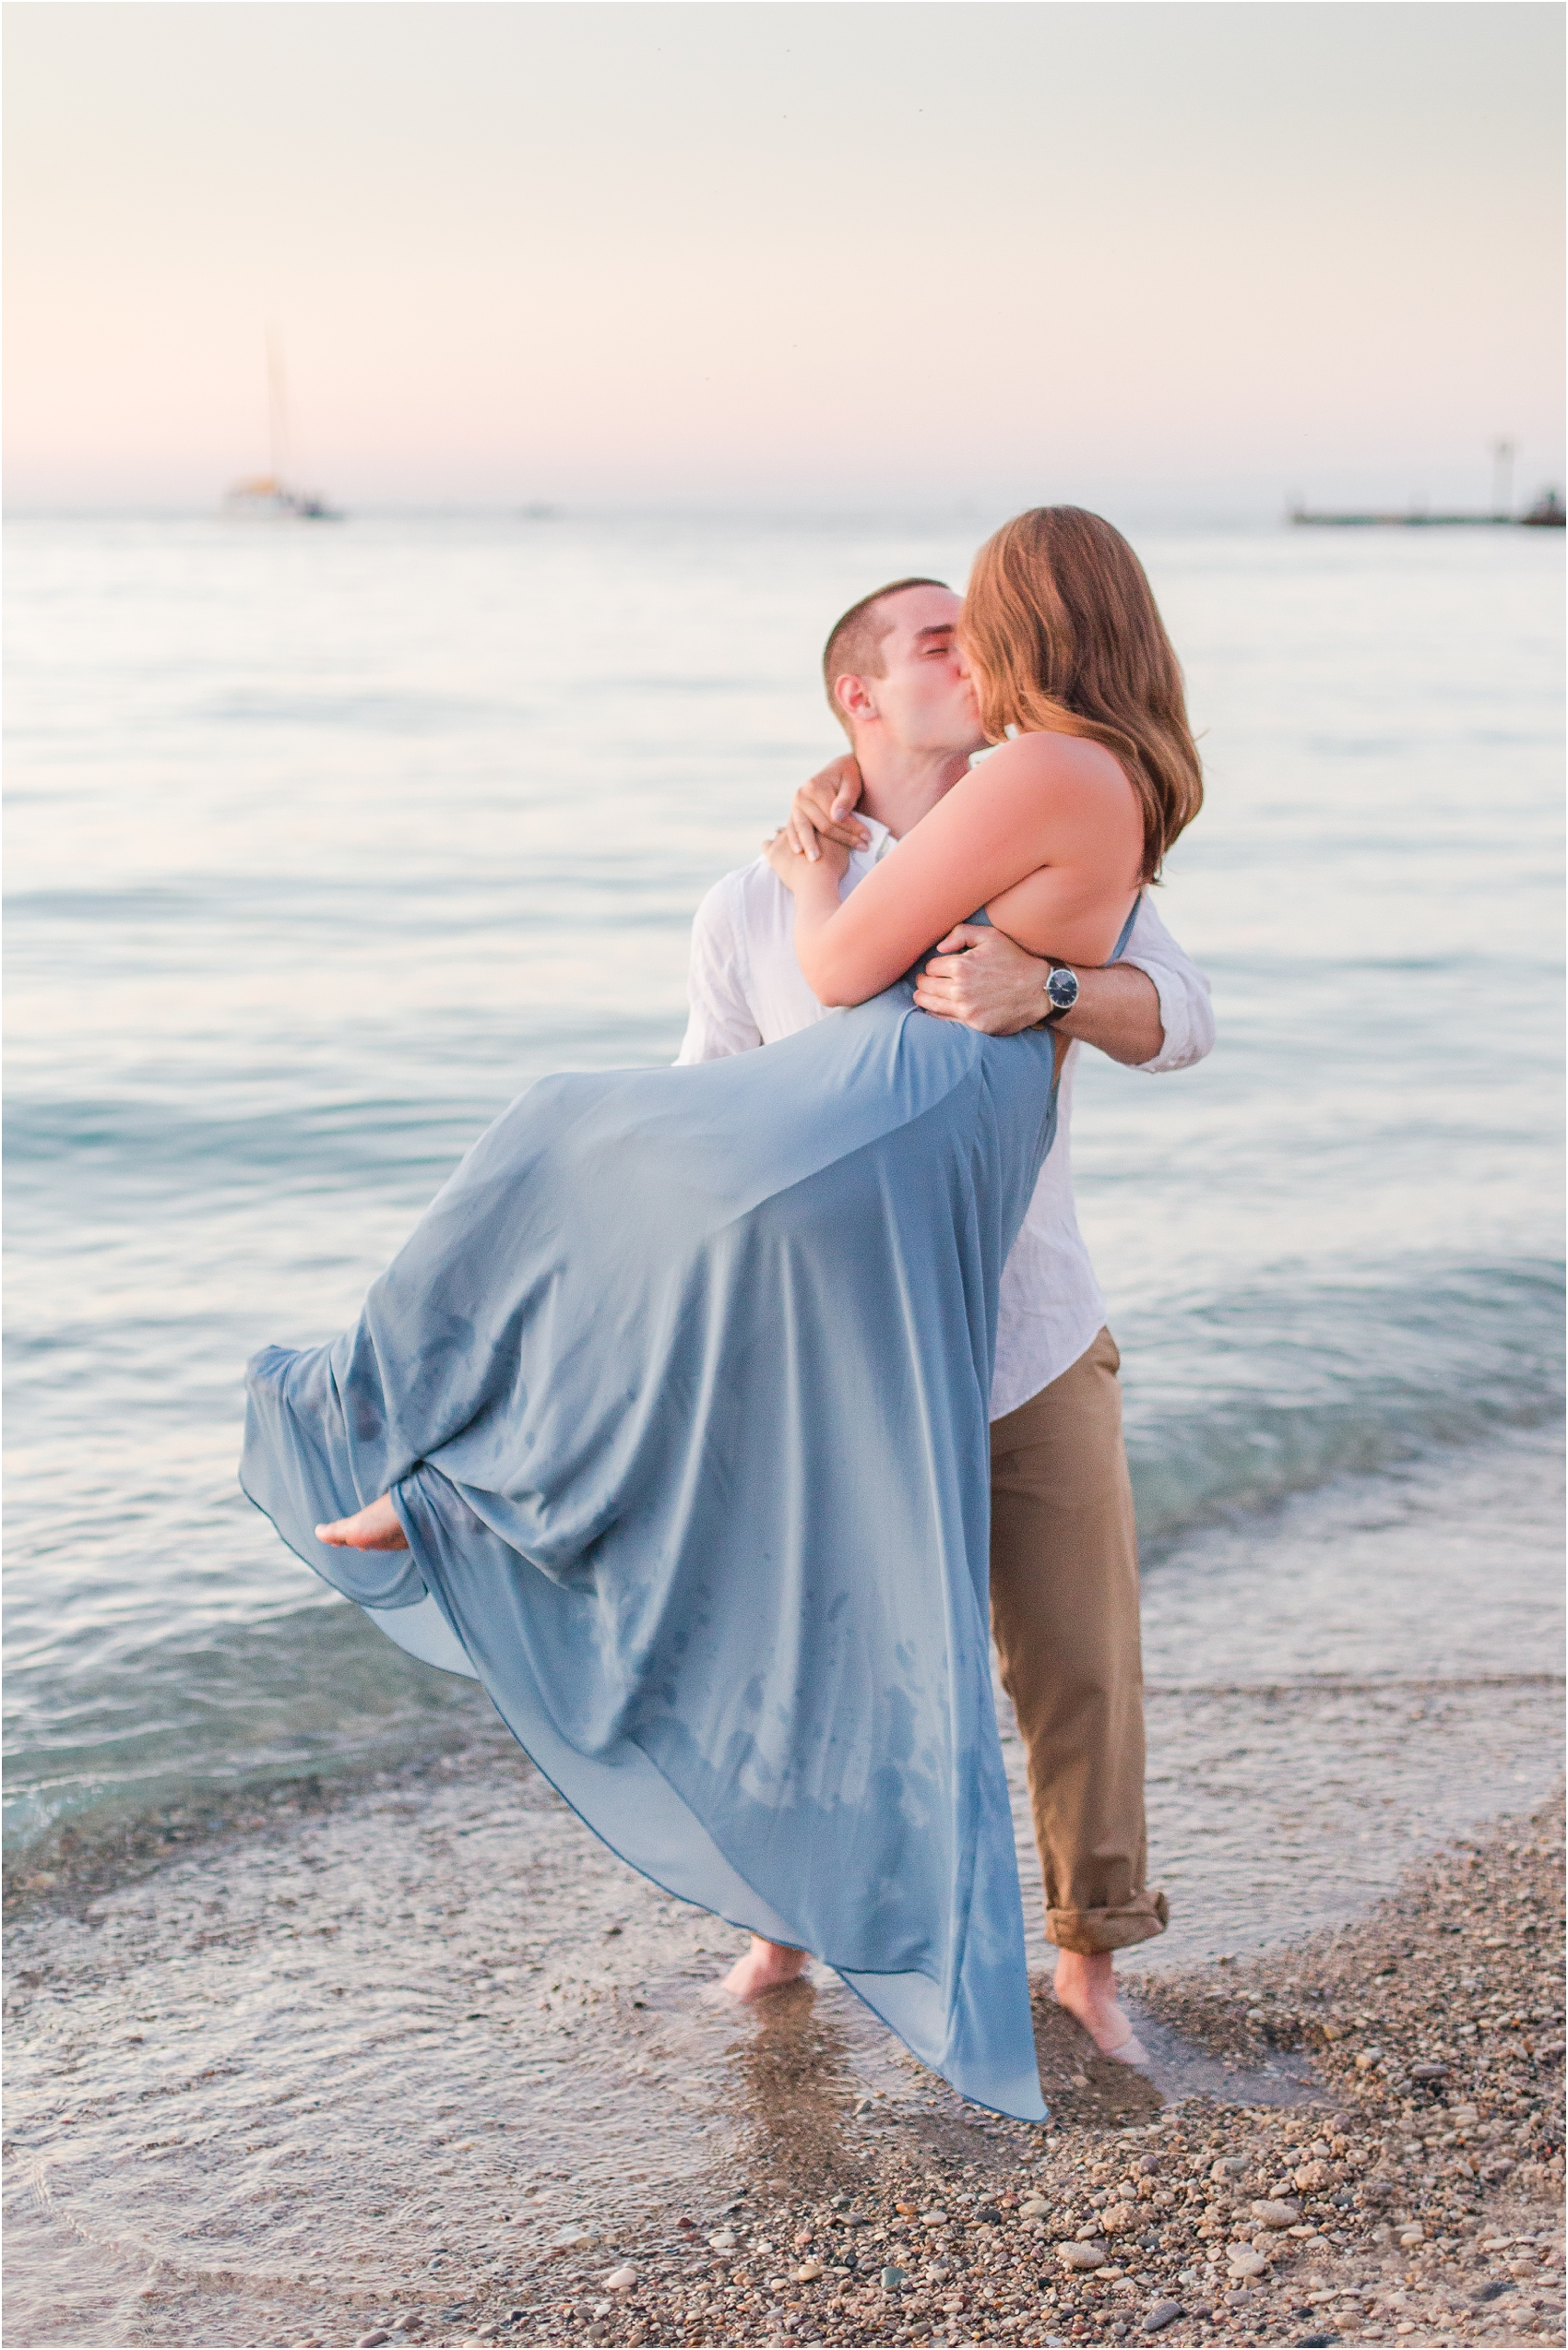 romantic-sunset-engagement-photos-at-michigan-beach-park-in-charlevoix-mi-by-courtney-carolyn-photography_0003.jpg